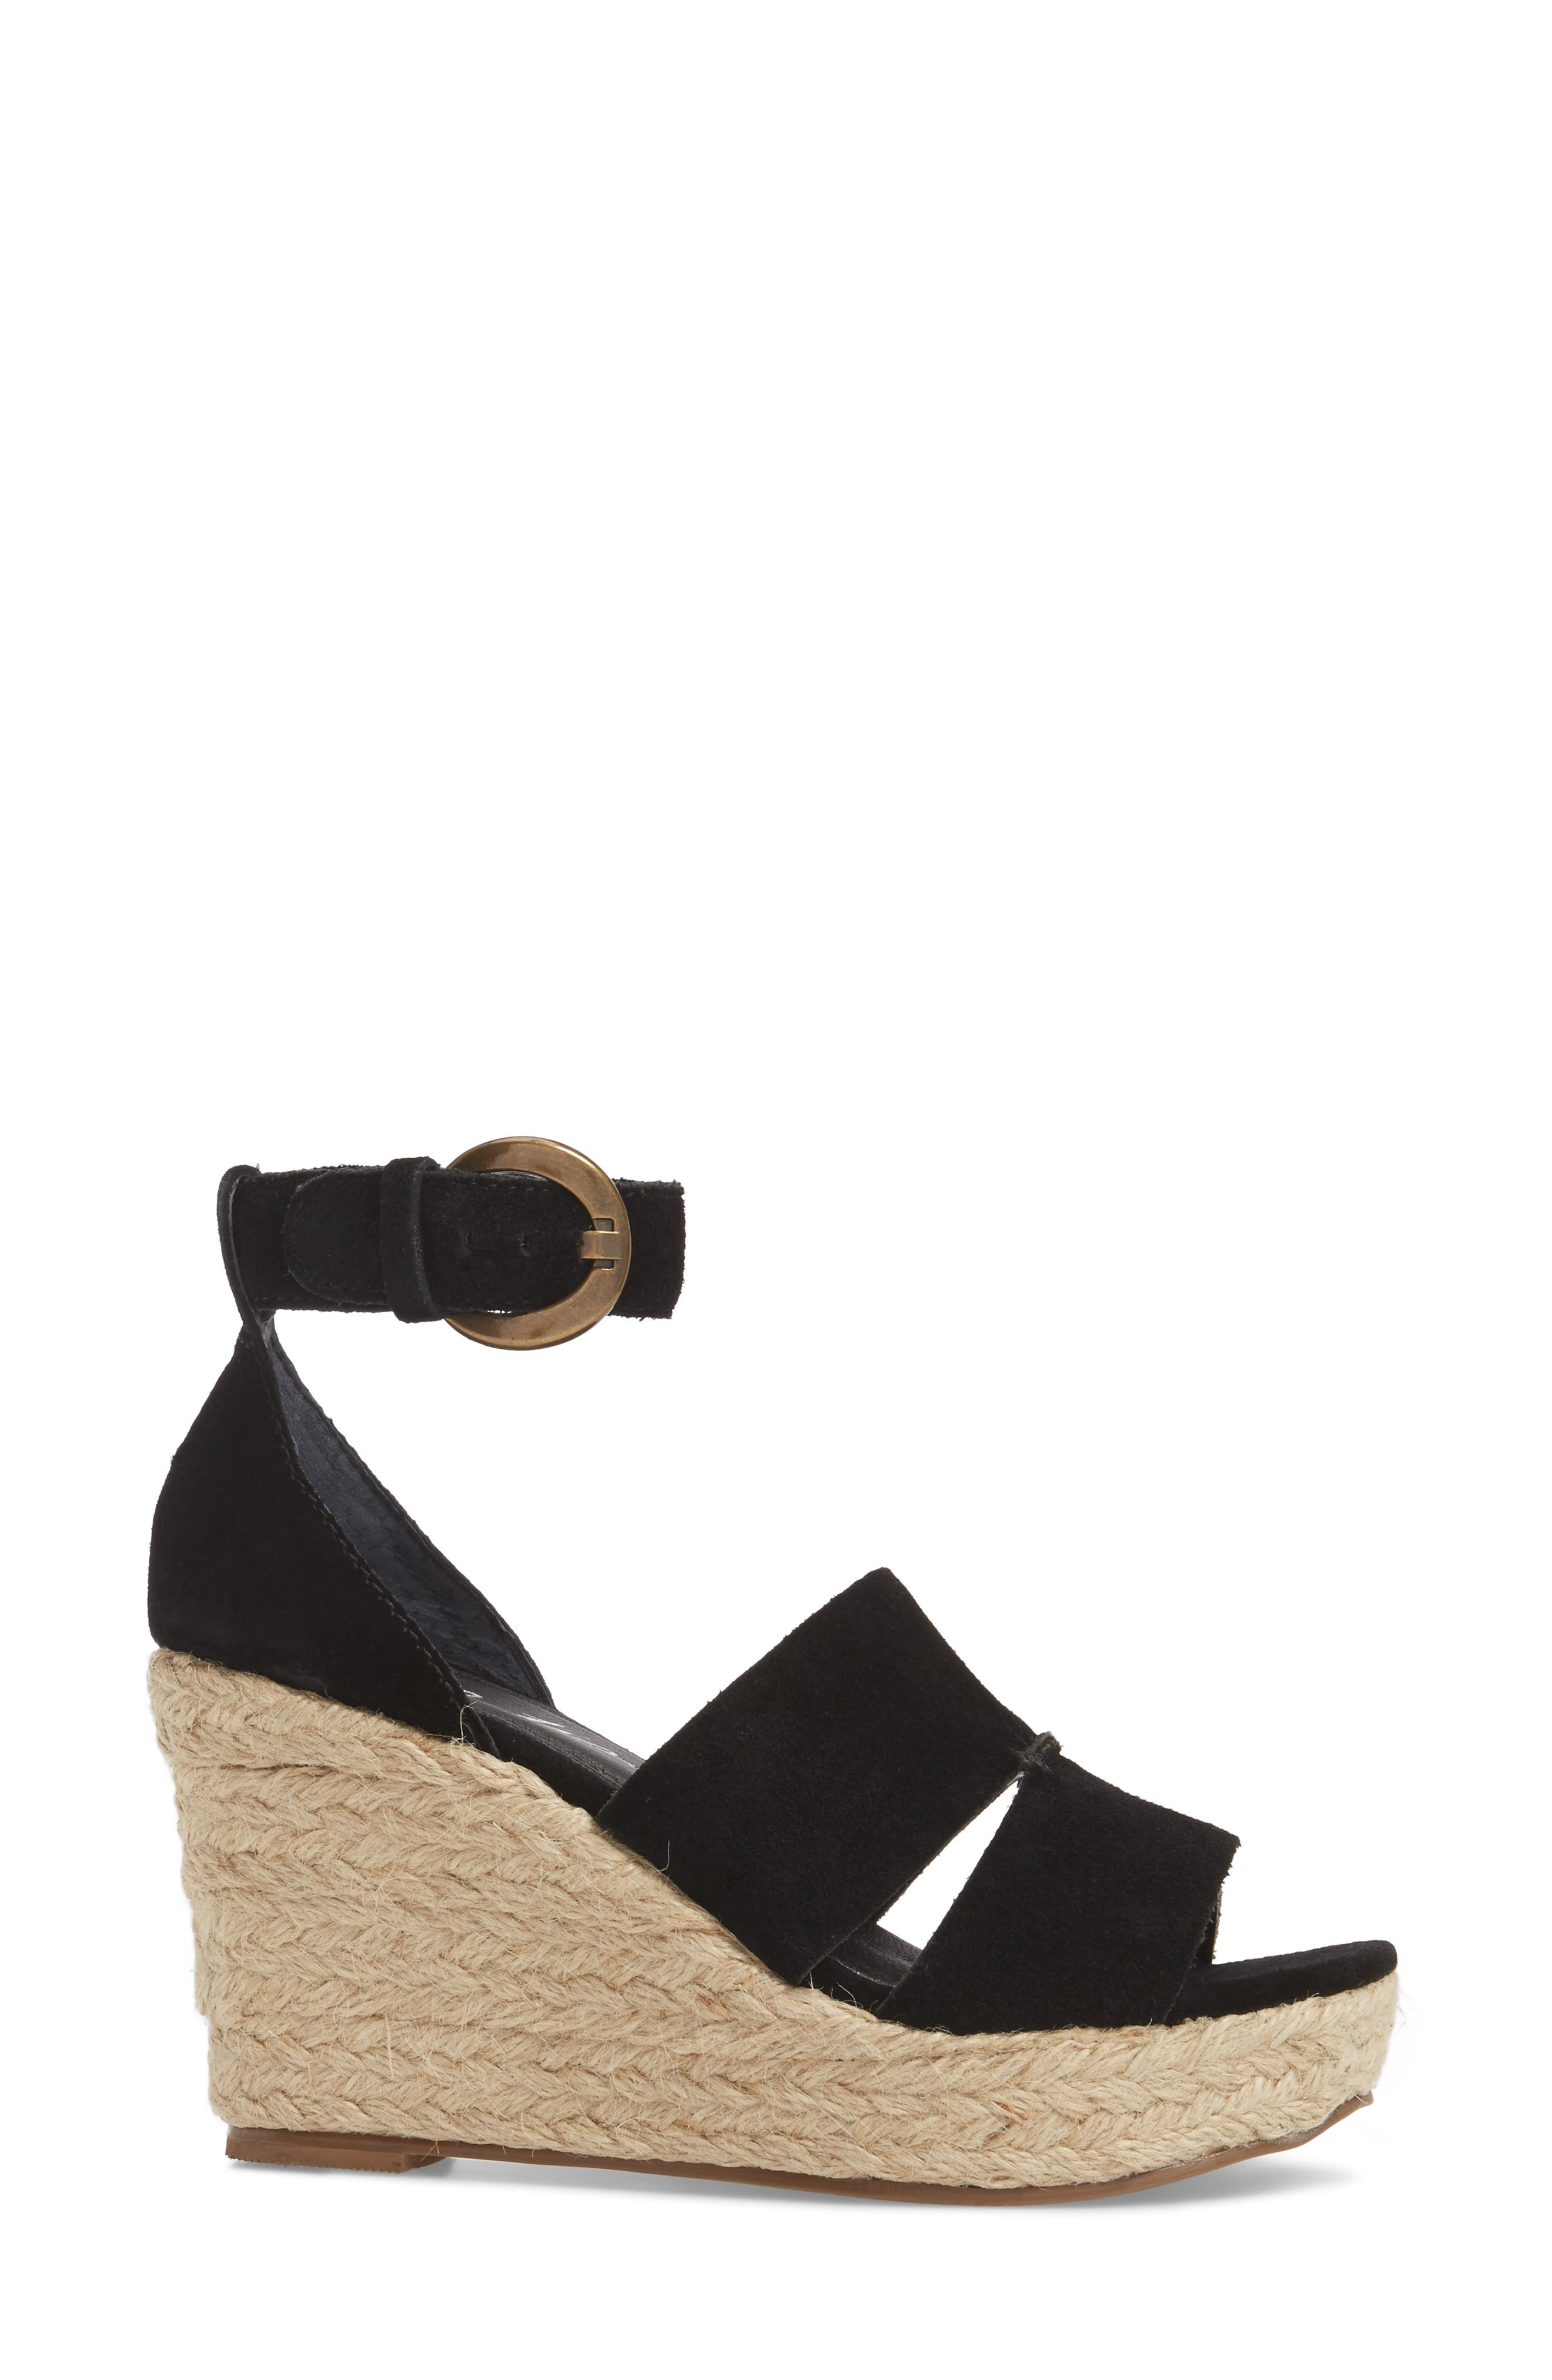 Cha Cha Espadrille Wedge Sandal,                             Alternate thumbnail 3, color,                             BLACK SUEDE